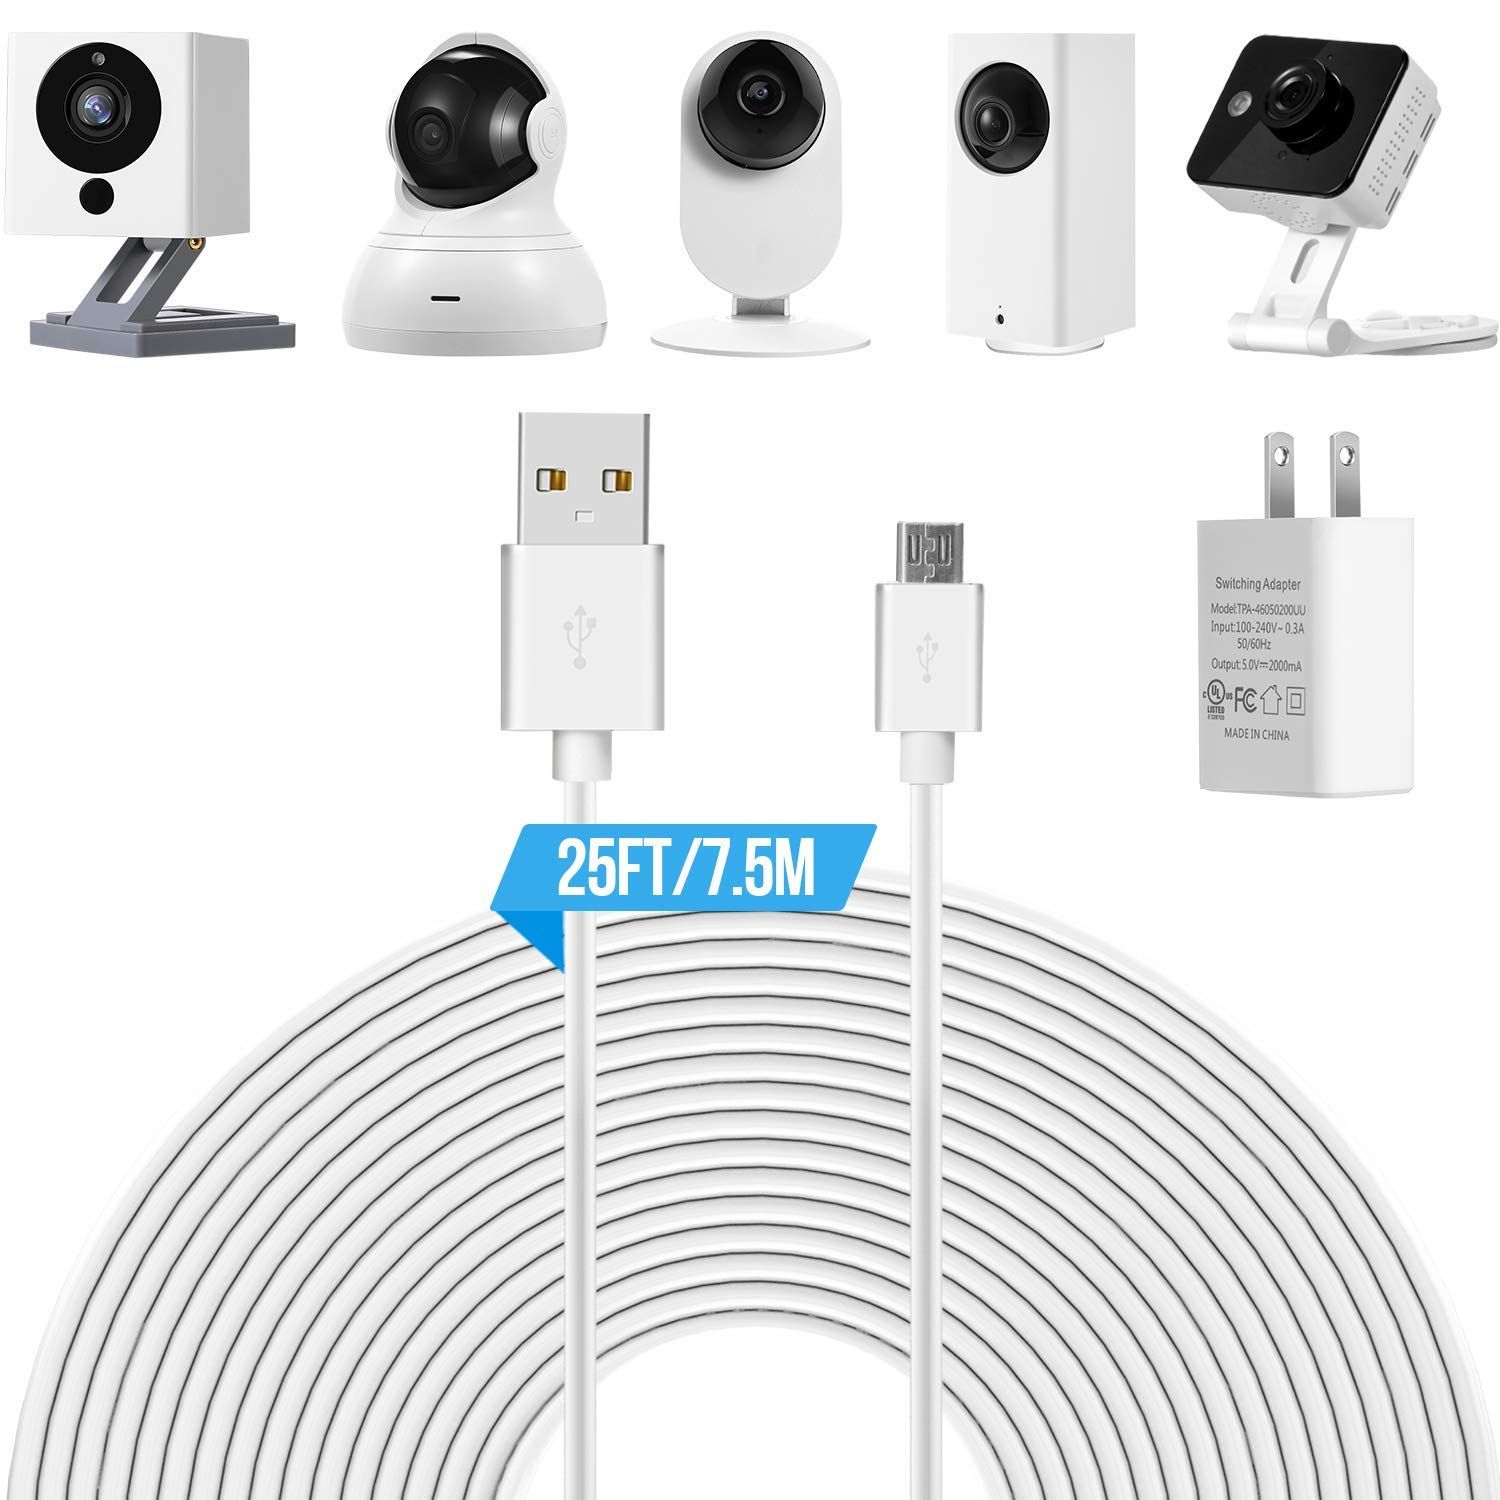 Buy 25ft Power Extension Cable For Wyze Cam Pan, Yi Camera